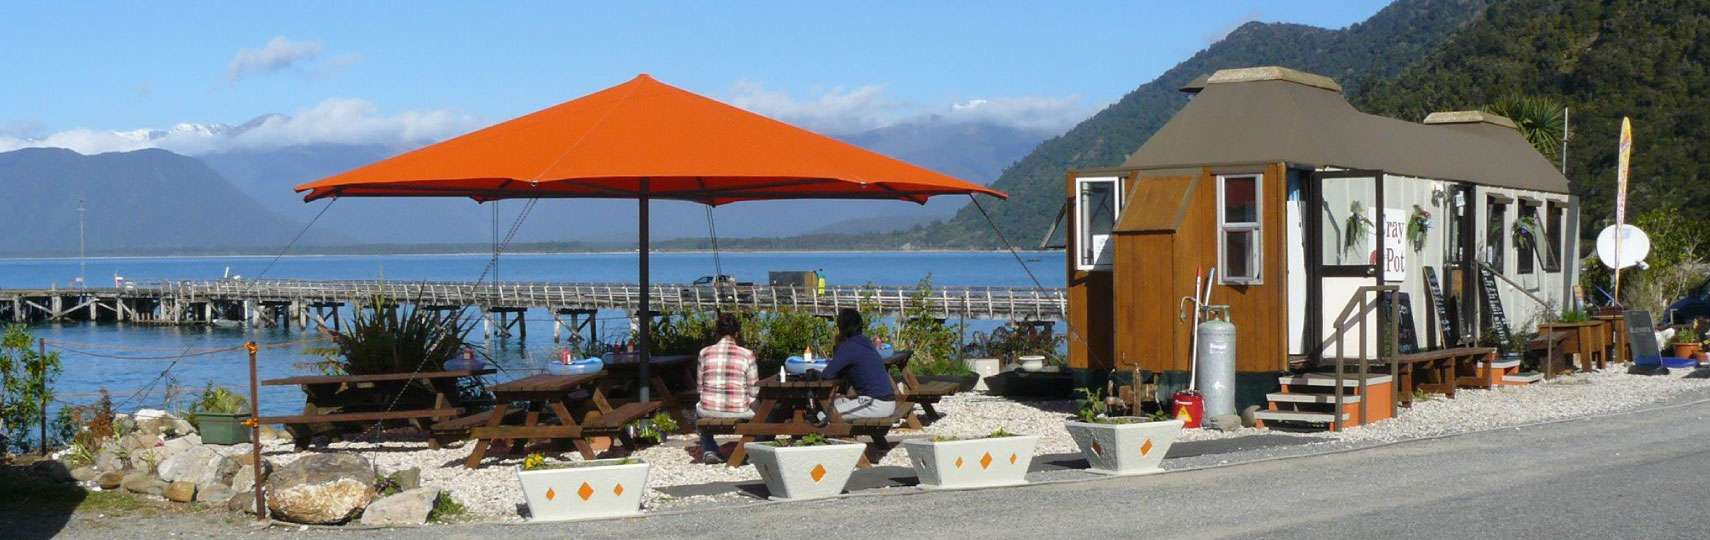 Haast River Motels - Things to do around Haast 3